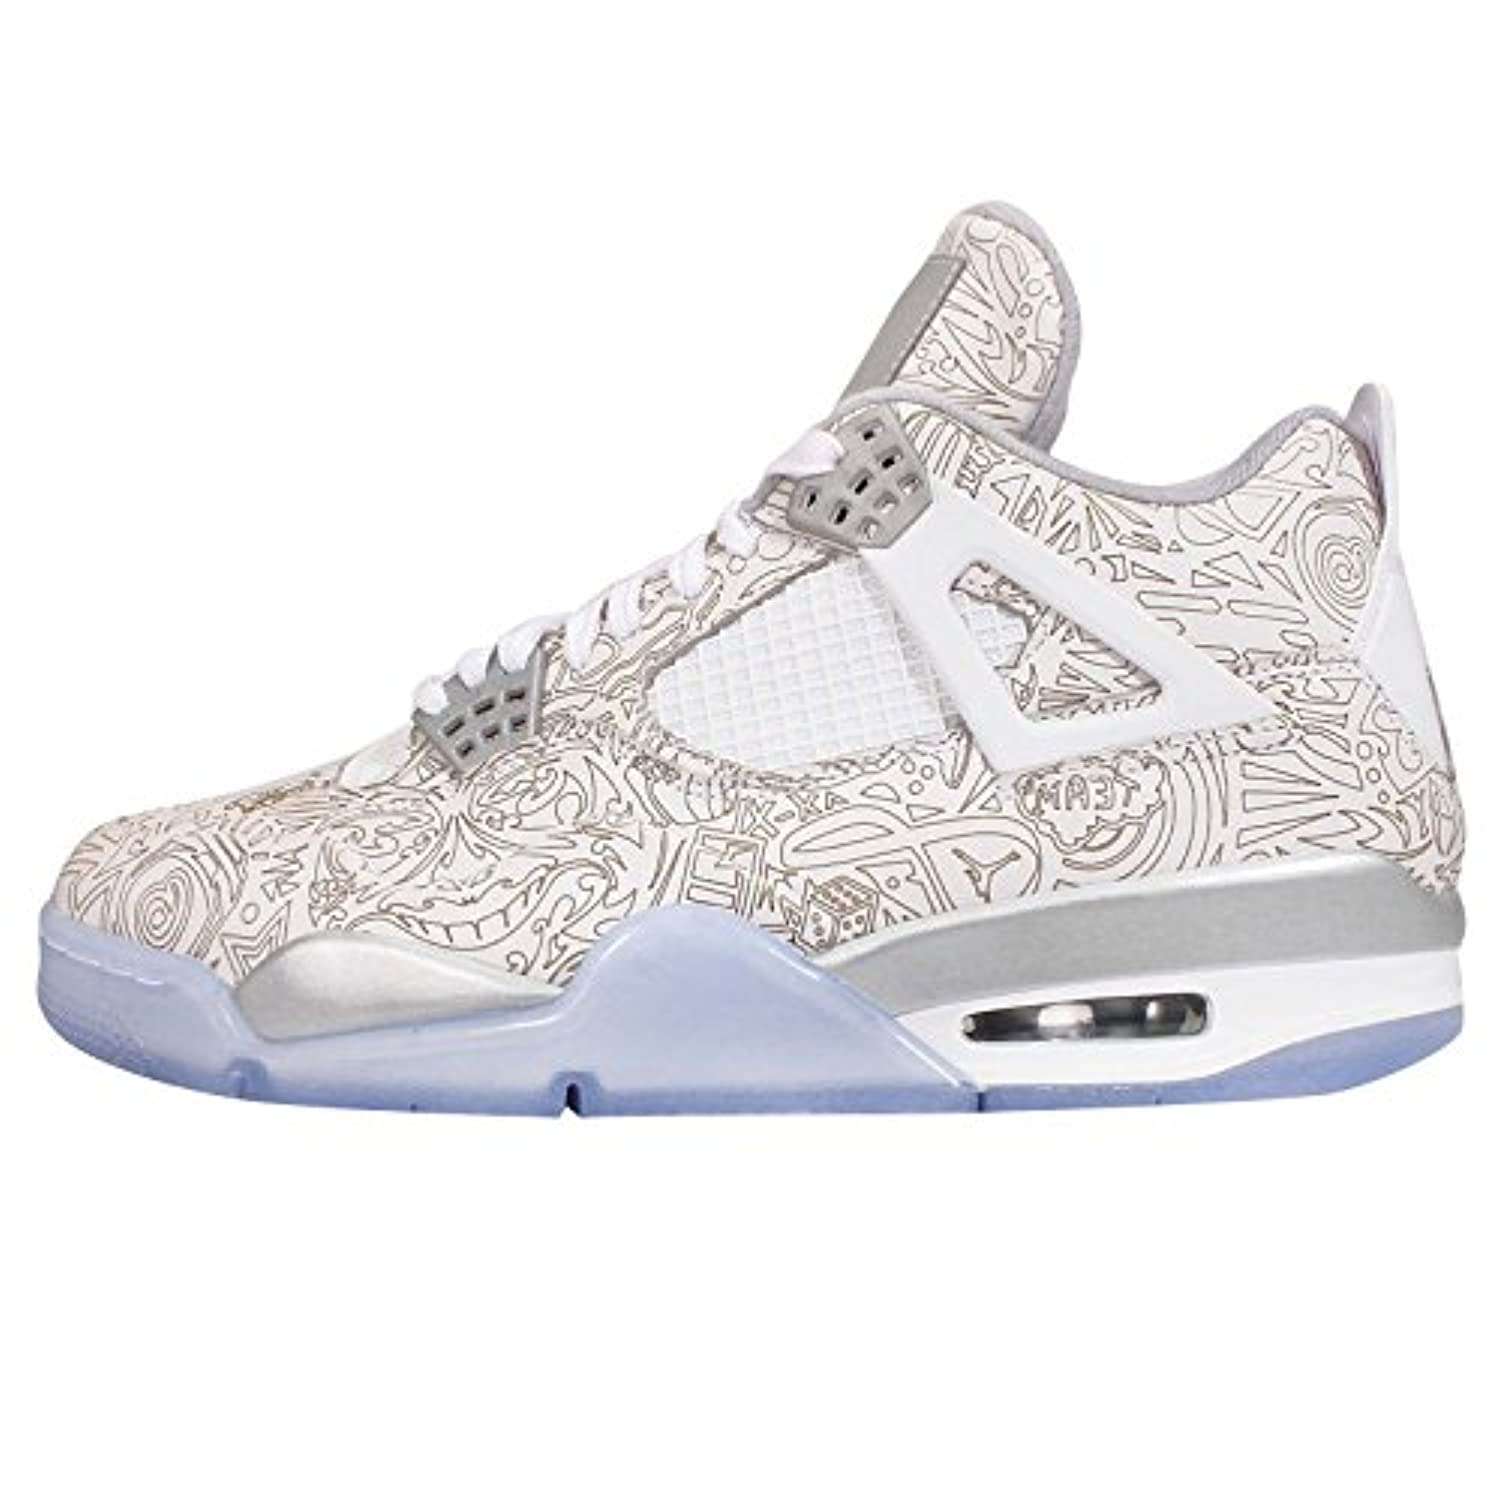 Nike Mens Air Jordan 4 Retro Laser White/Chrome-Metallic Silver Leather Size 12 Basketball Shoes | $290 - Buy today!